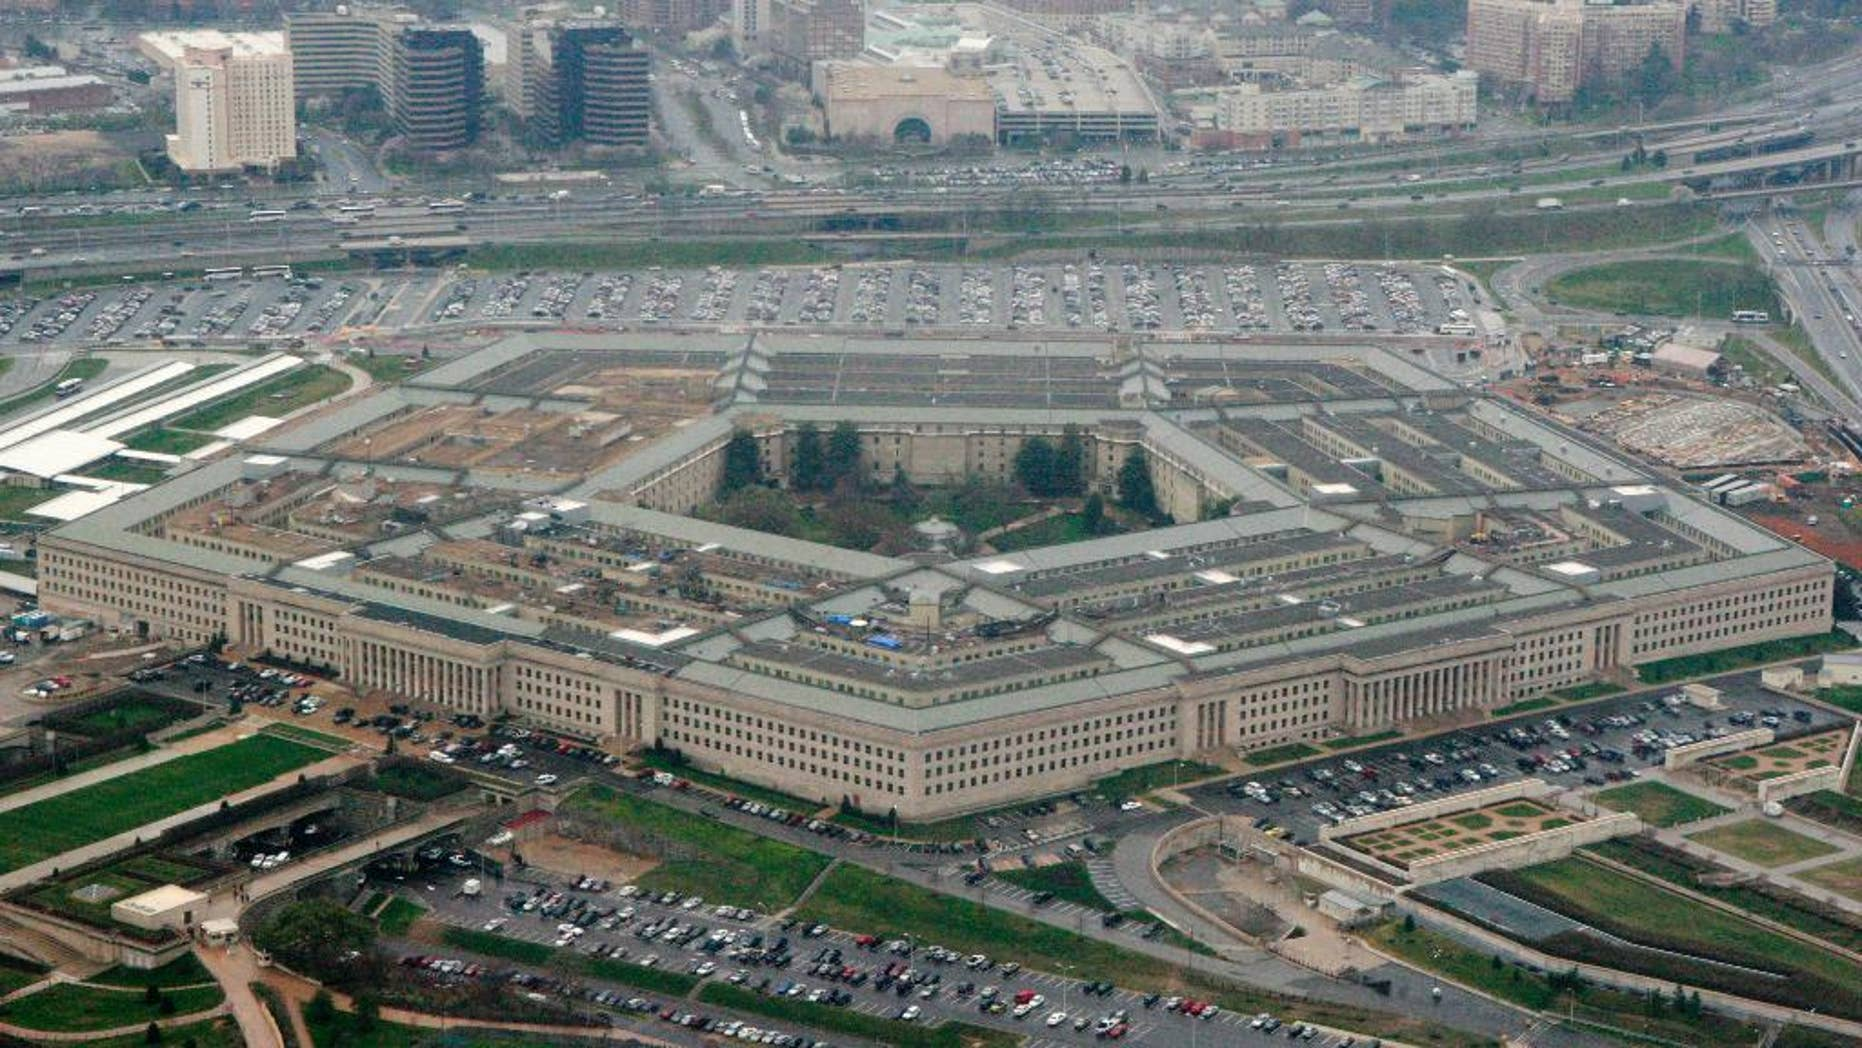 "FILE - This March 27, 2008, aerial file photo shows the Pentagon in Washington. The U.S. is protesting an intercept of a U.S. reconnaissance plane by a Russian fighter jet last week, calling it ""unsafe and unprofessional"" amid what it views as increasingly aggressive air operations by Moscow. Pentagon spokesman Mark Wright on Sunday, April 12, 2015, said the U.S. was filing a complaint to Russia after the April 7 incident over the Baltic Sea. (AP Photo/Charles Dharapak, File)"